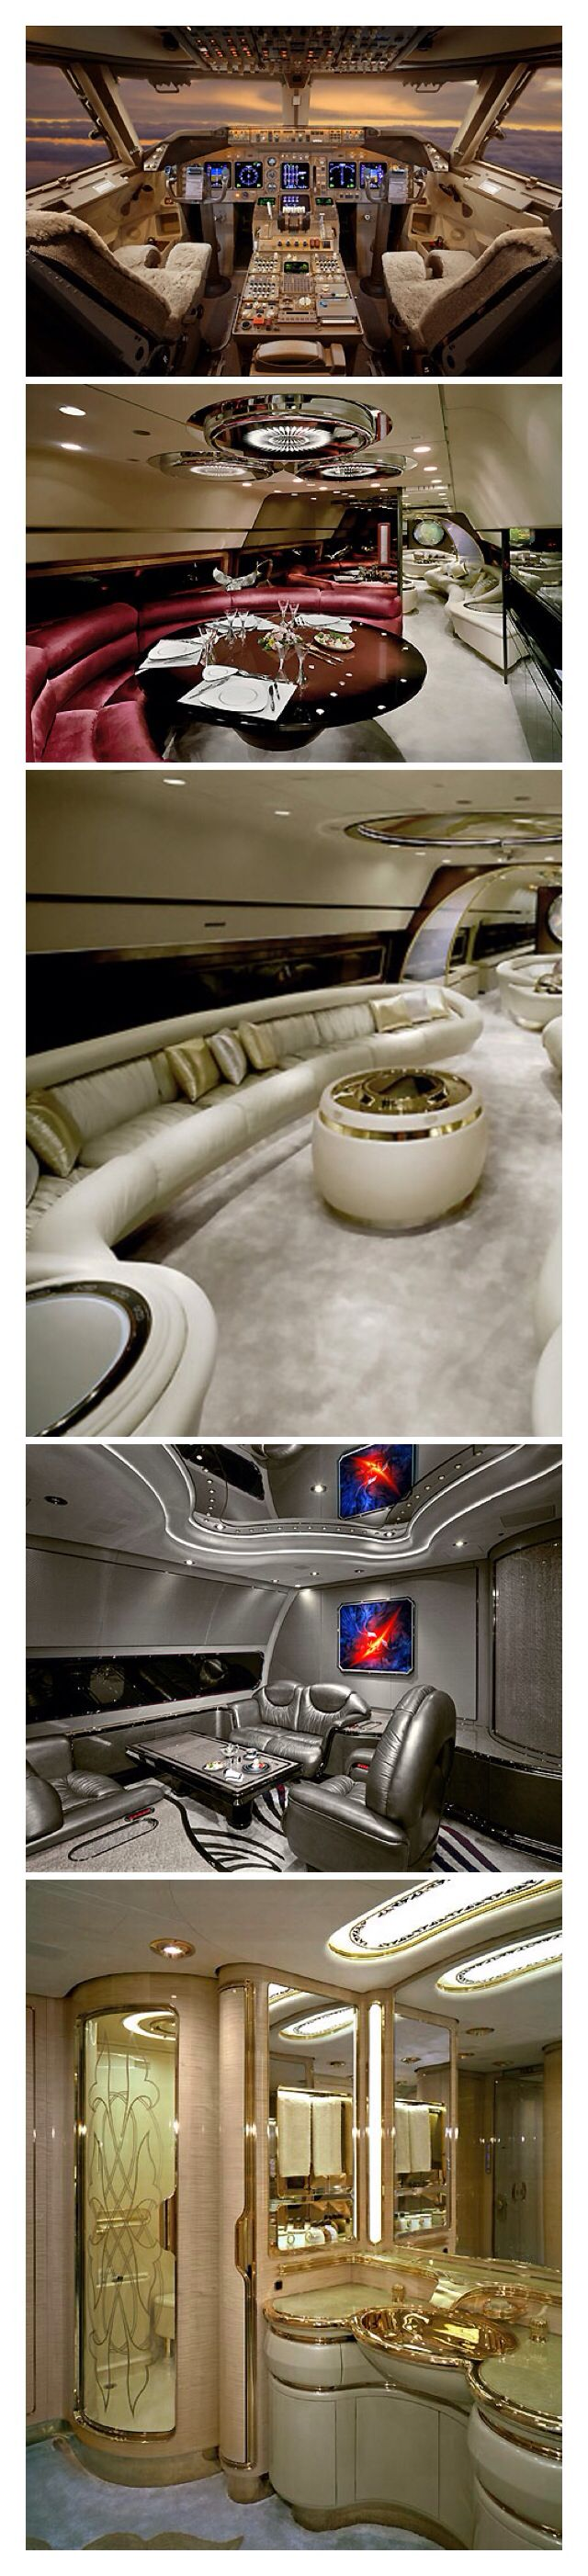 Luxury Style Living in your own private jet⭐️